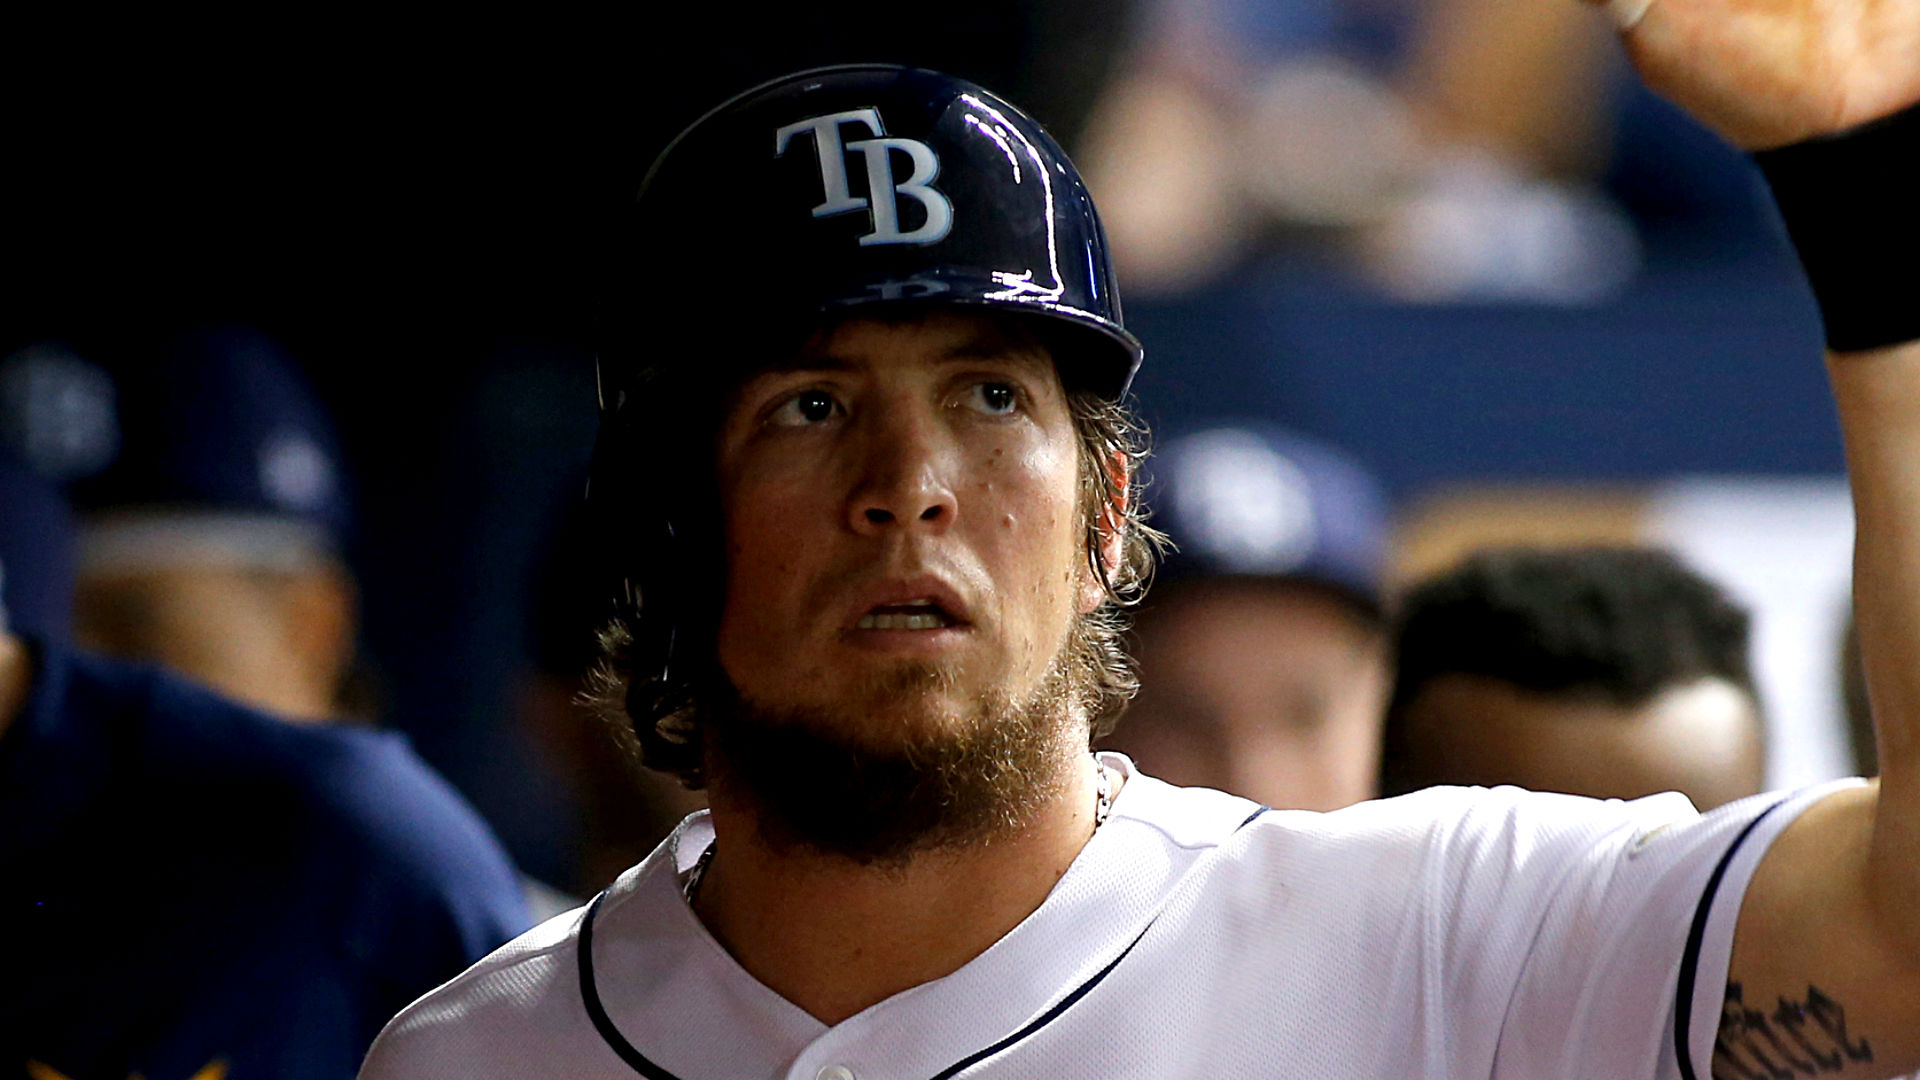 Rays place Rasmus on restricted list, likely done for season